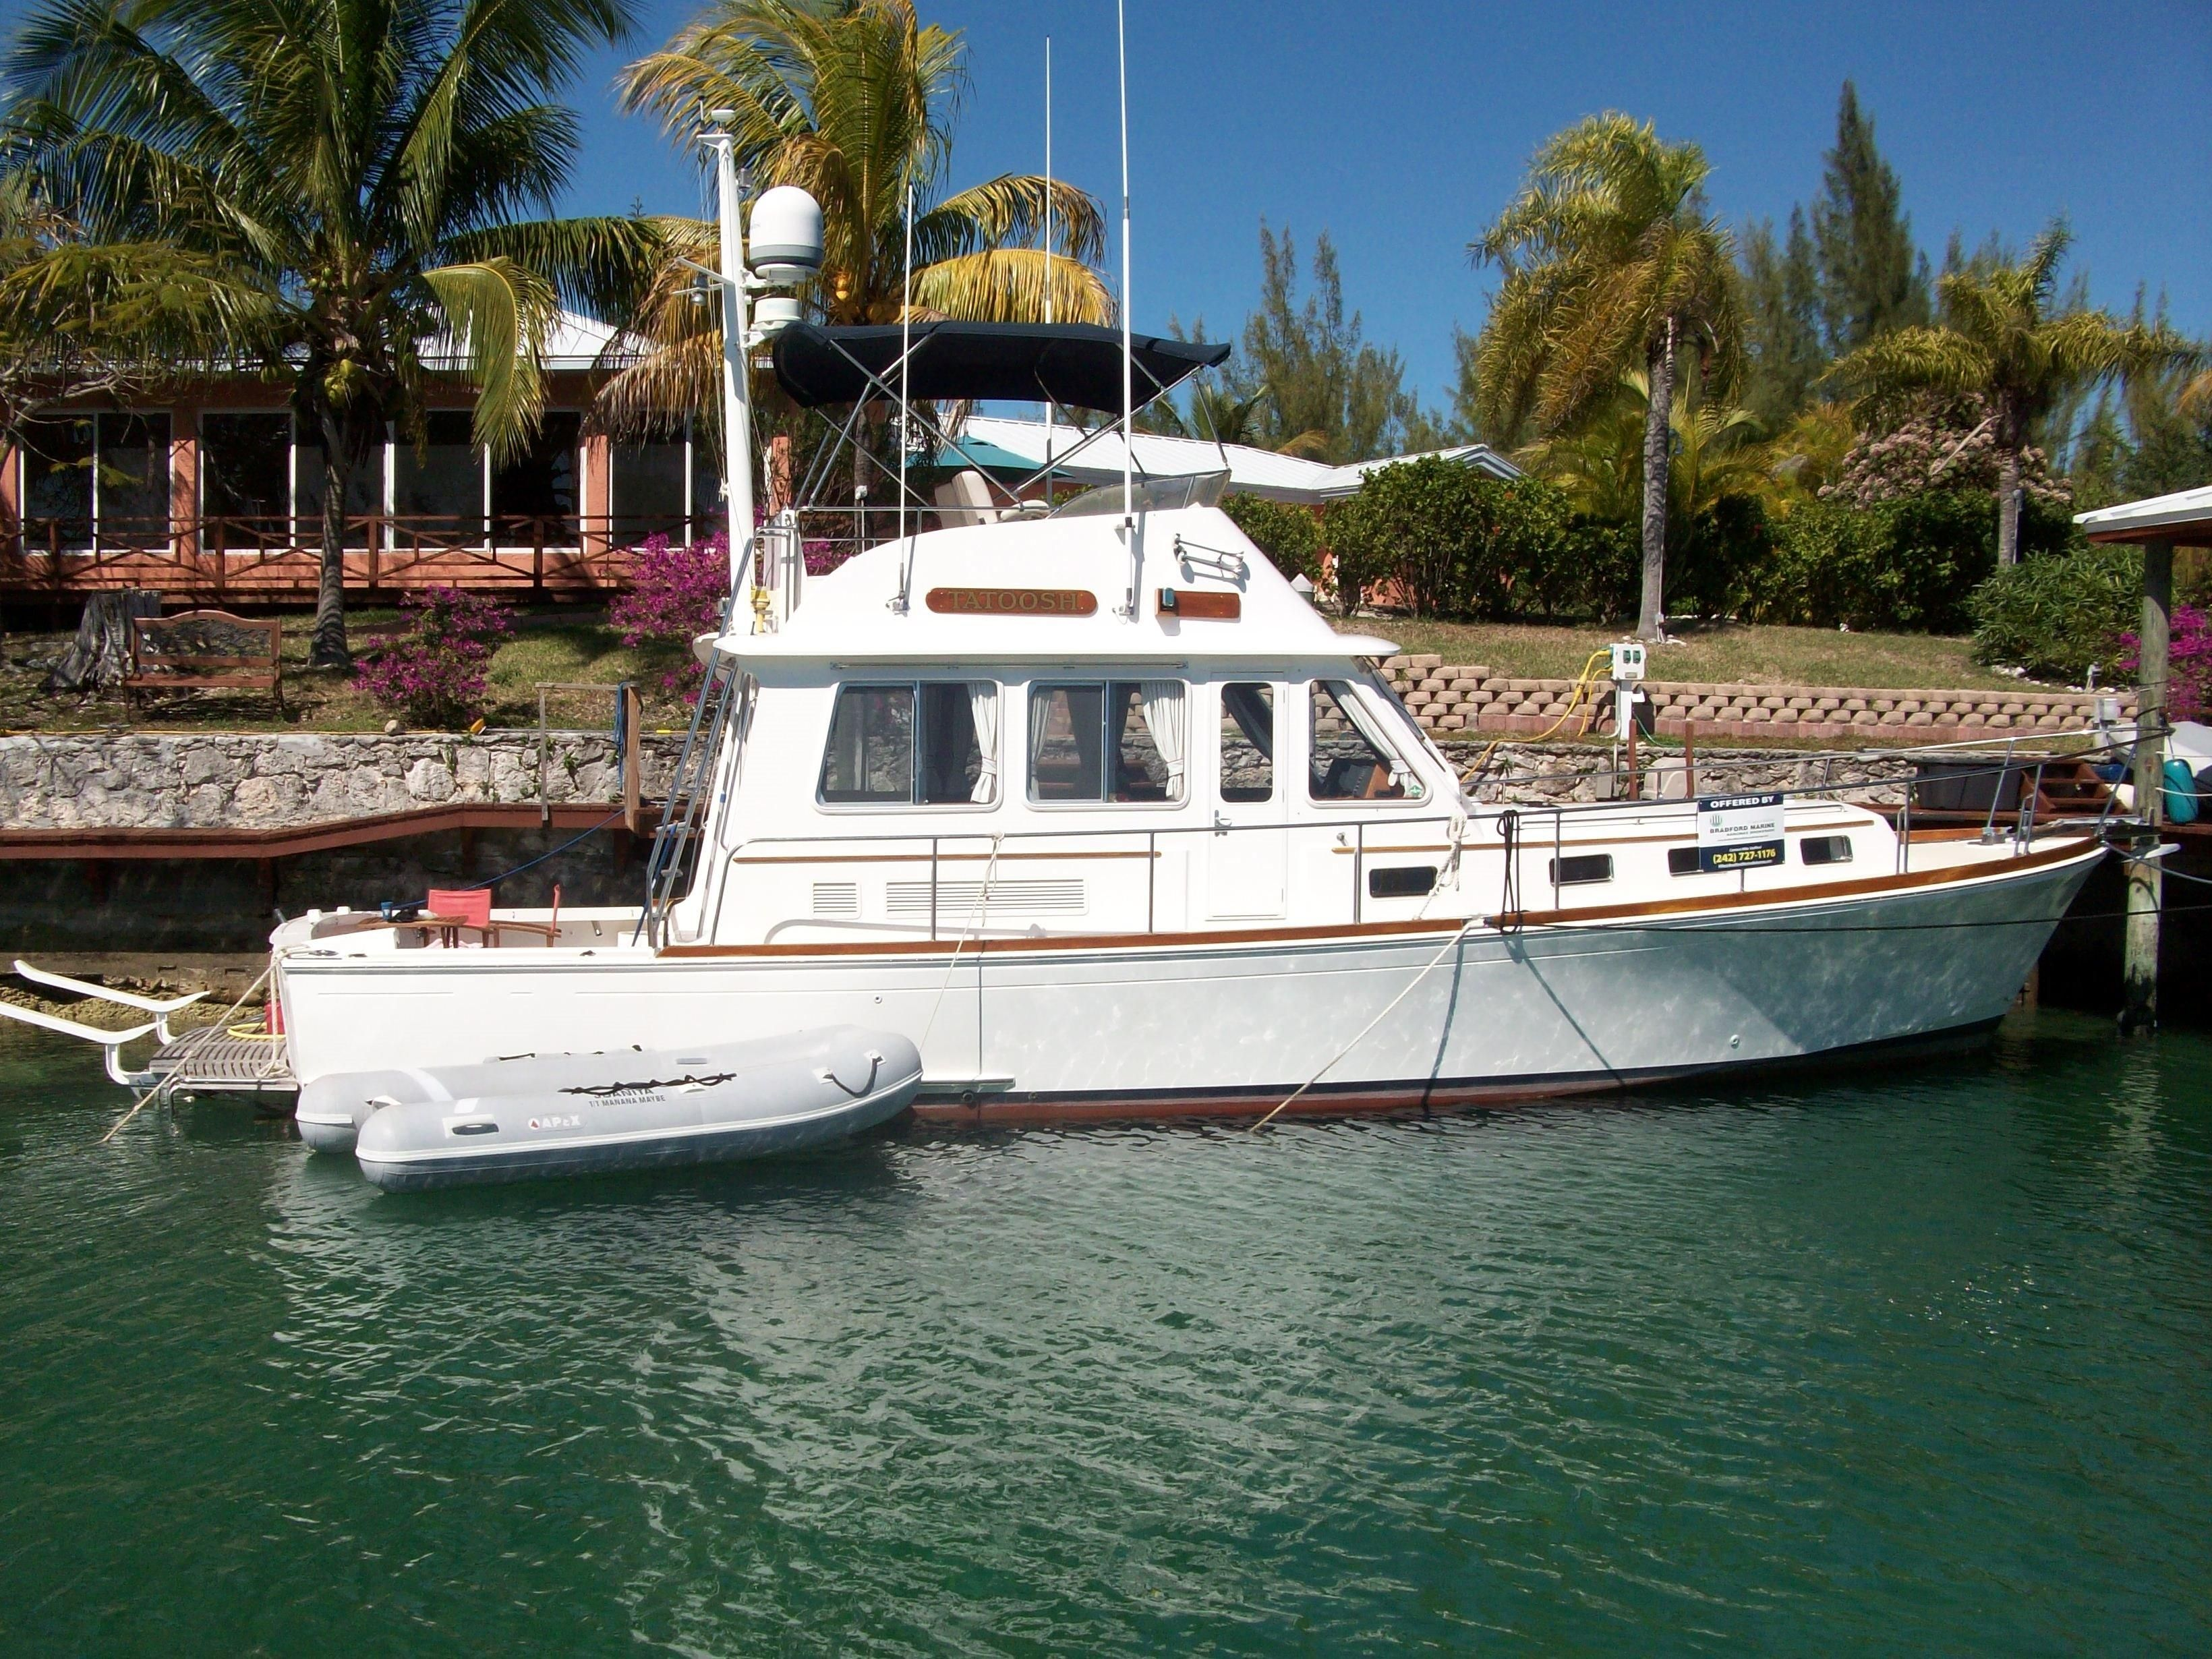 1998 grand banks eastbay eastbay power boat for sale www for Grand banks motor yachts for sale